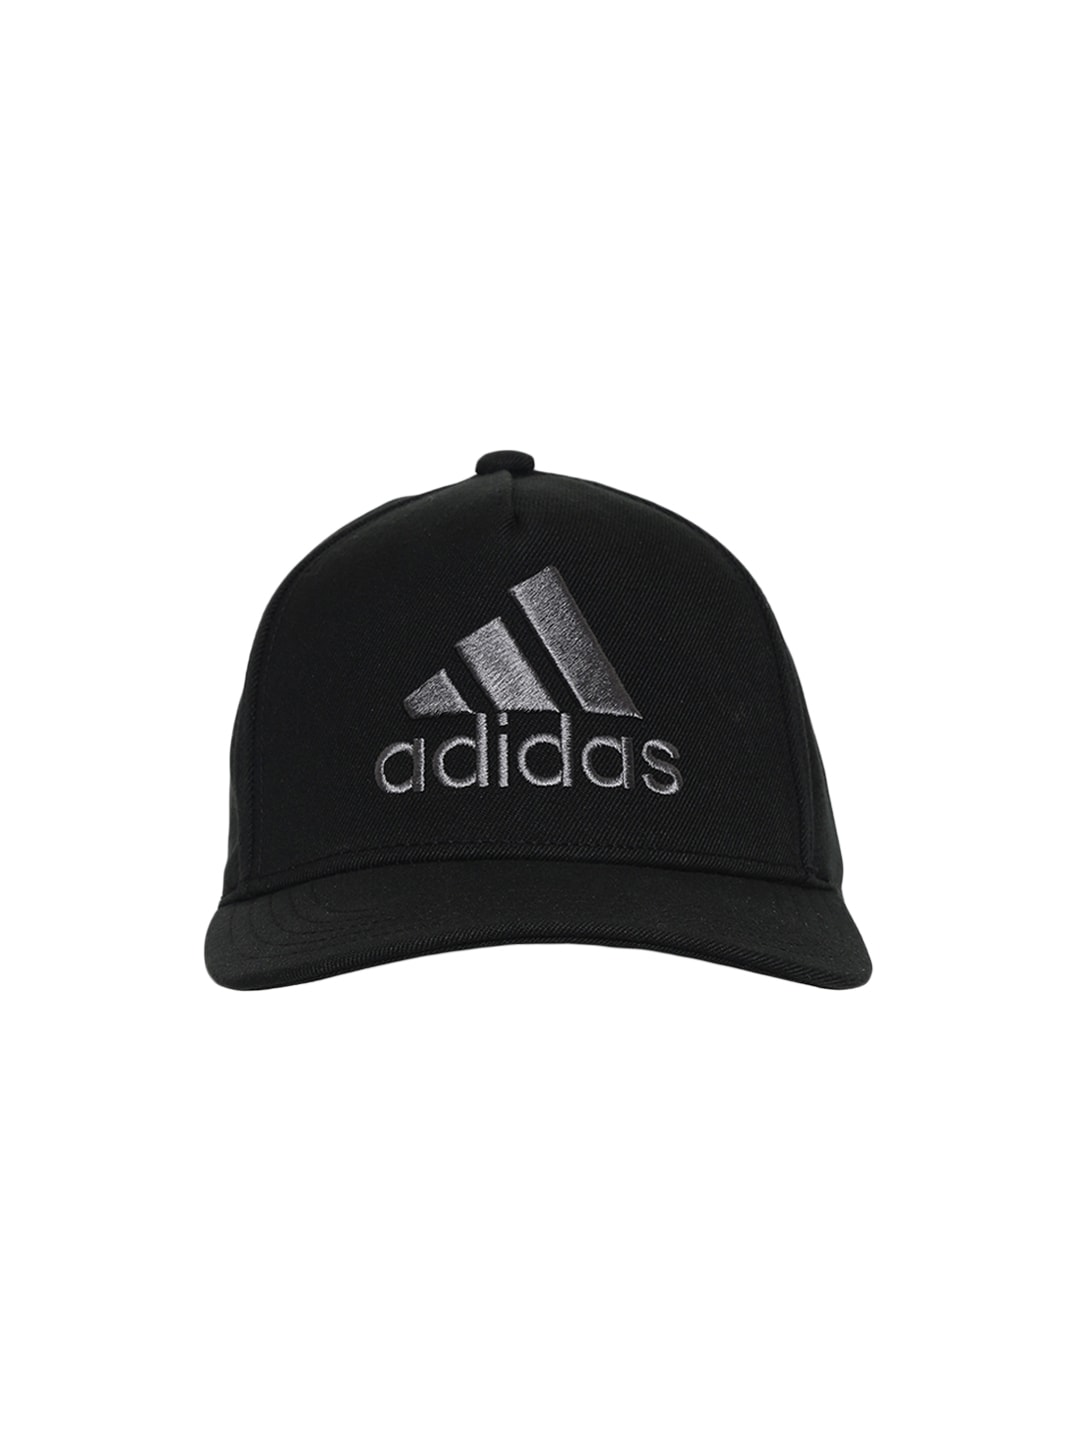 ddc7f895451 Adidas Cap - Buy Adidas Caps for Women   Girls Online